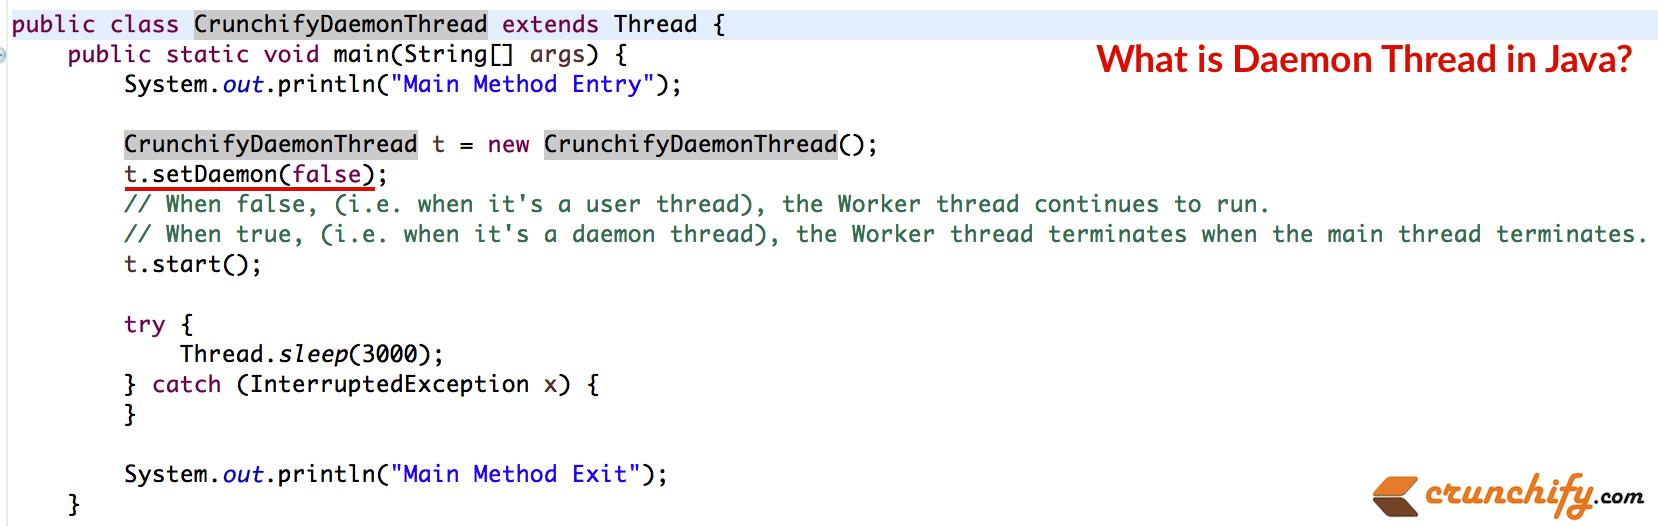 what-is-daemon-thread-in-java